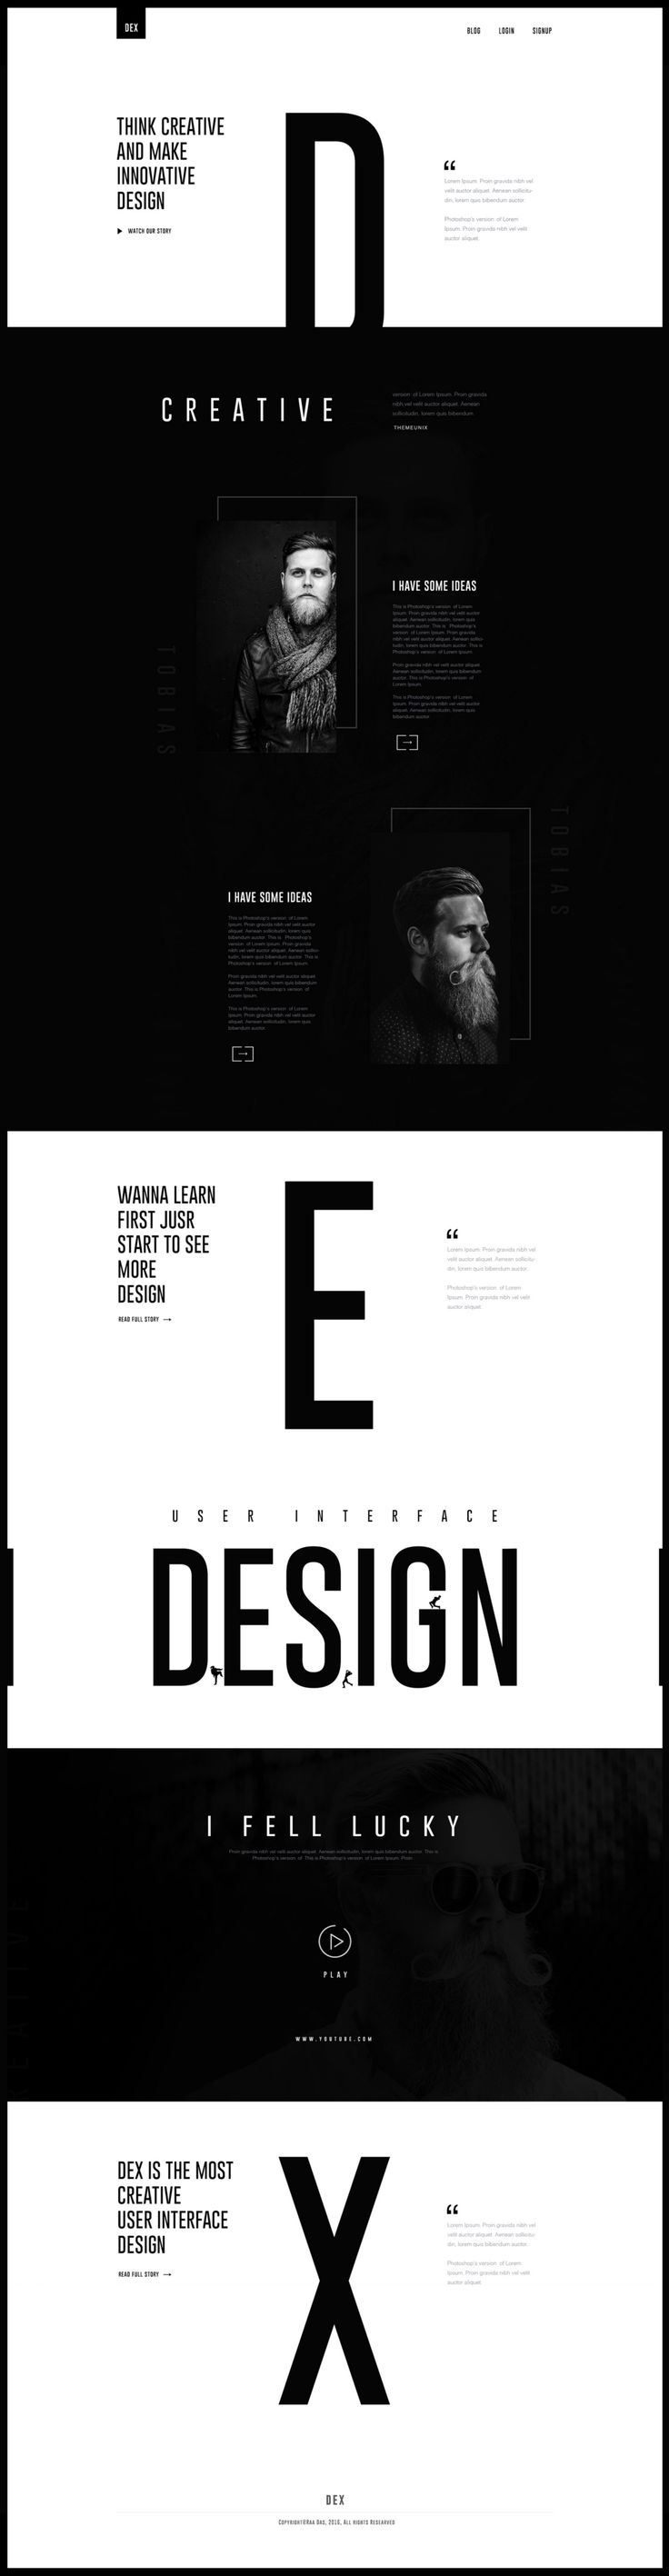 I like this website design because it is very Graphic and stylish. This is modern and this is what I am trying to achieve.